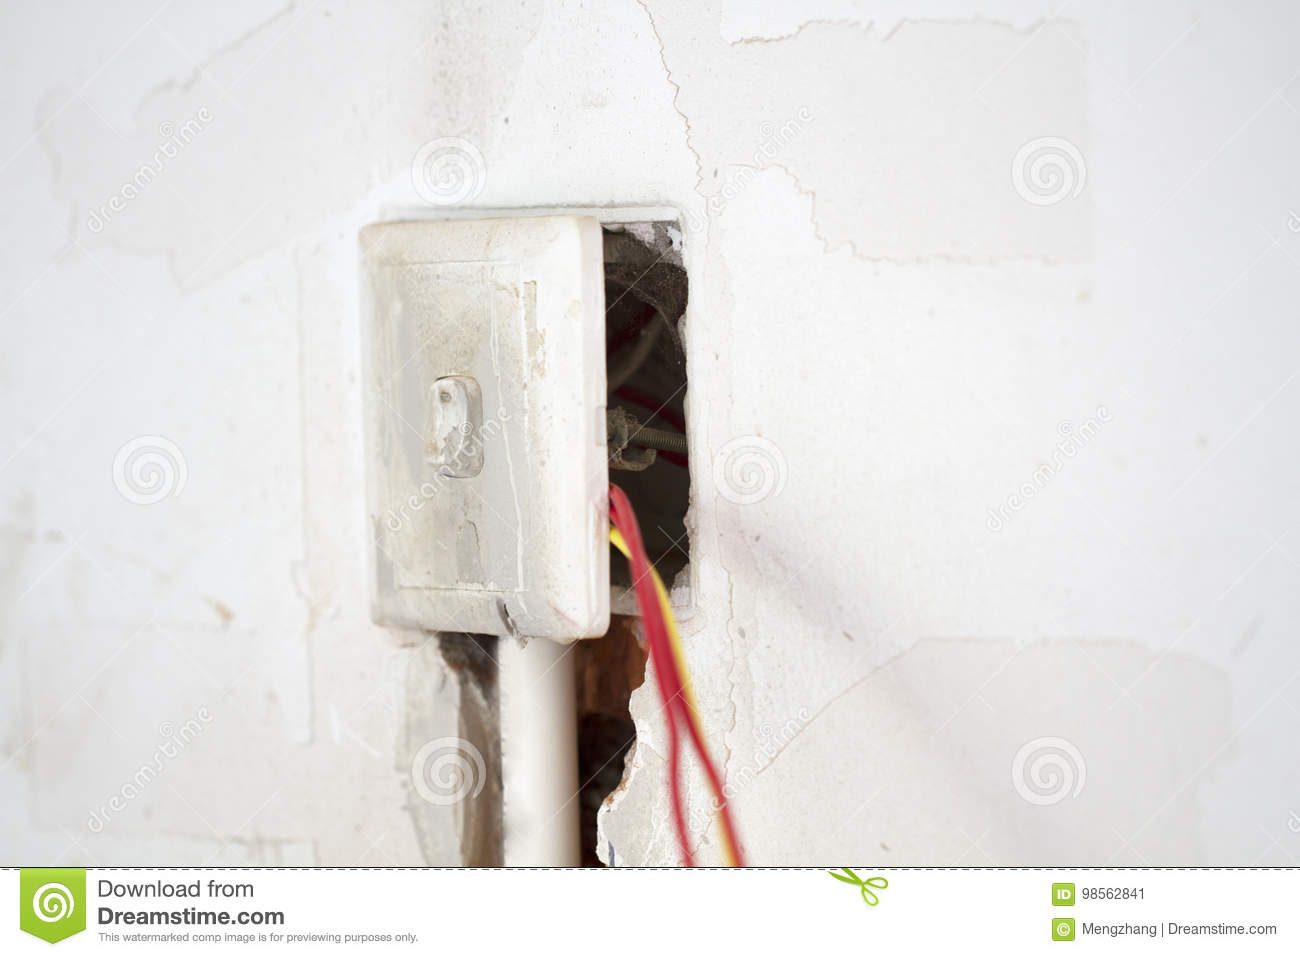 Electrical Renovation Work, Light Switch Stock Image - Image of hole ...